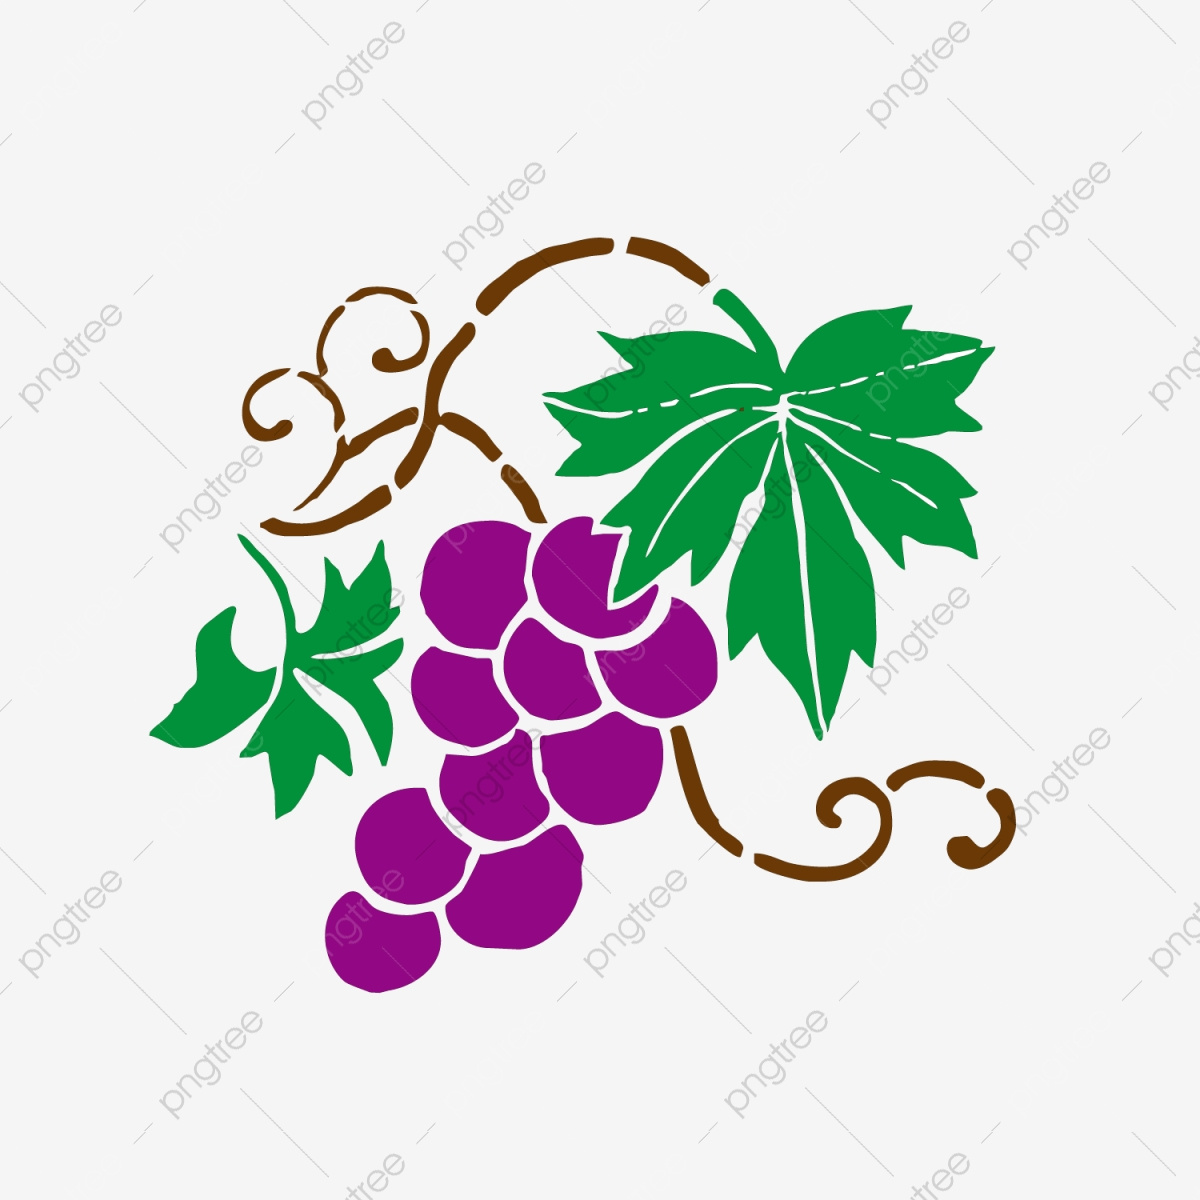 Grape Leaves Png Images Vector And Psd Files Free Download On Pngtree